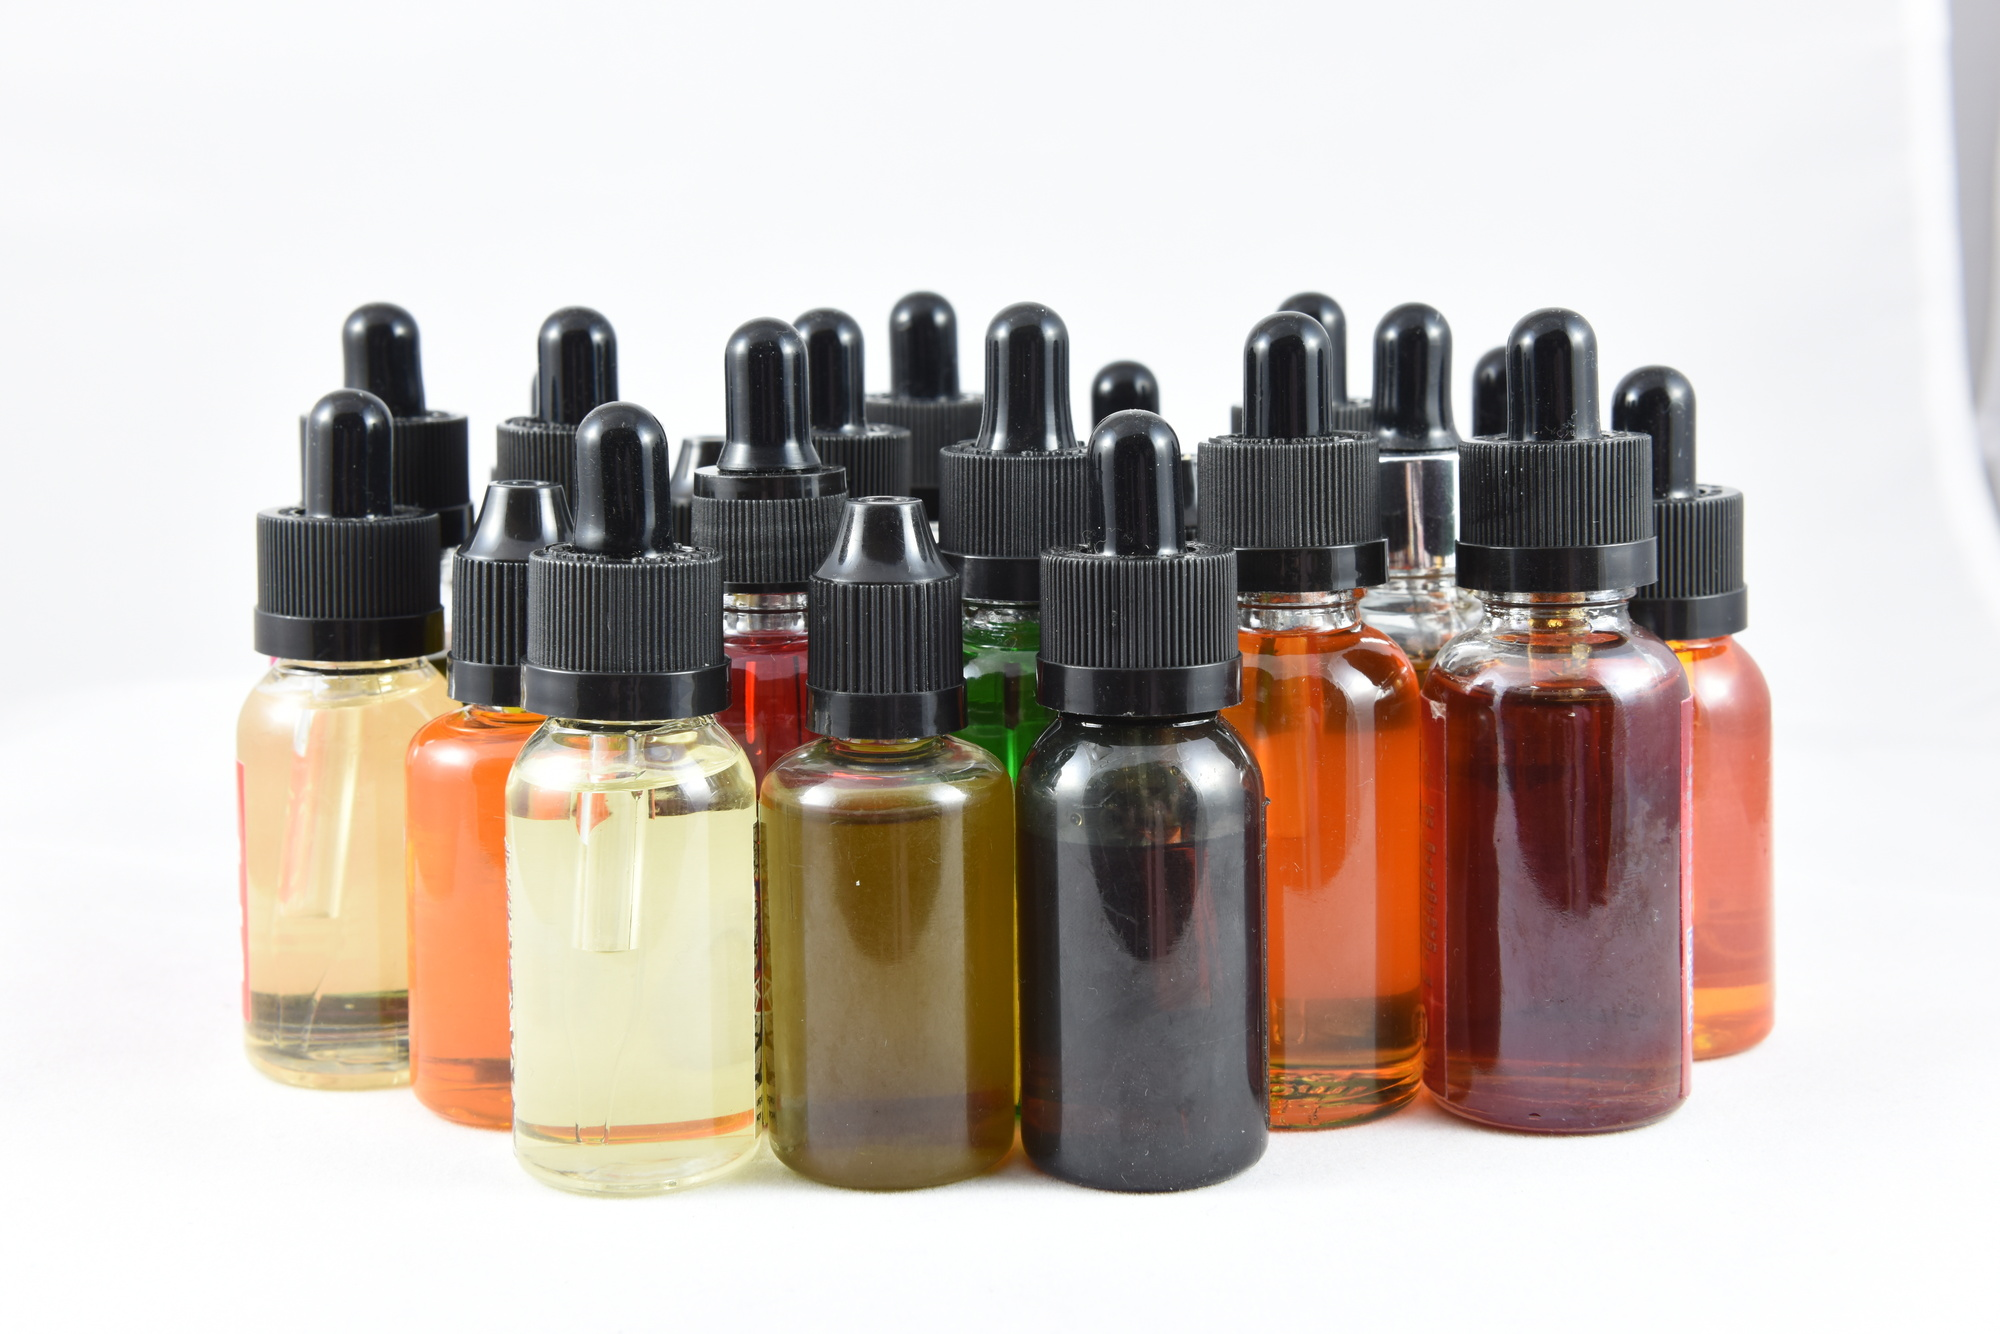 How to Find an E-Liquid Flavor You'll Love